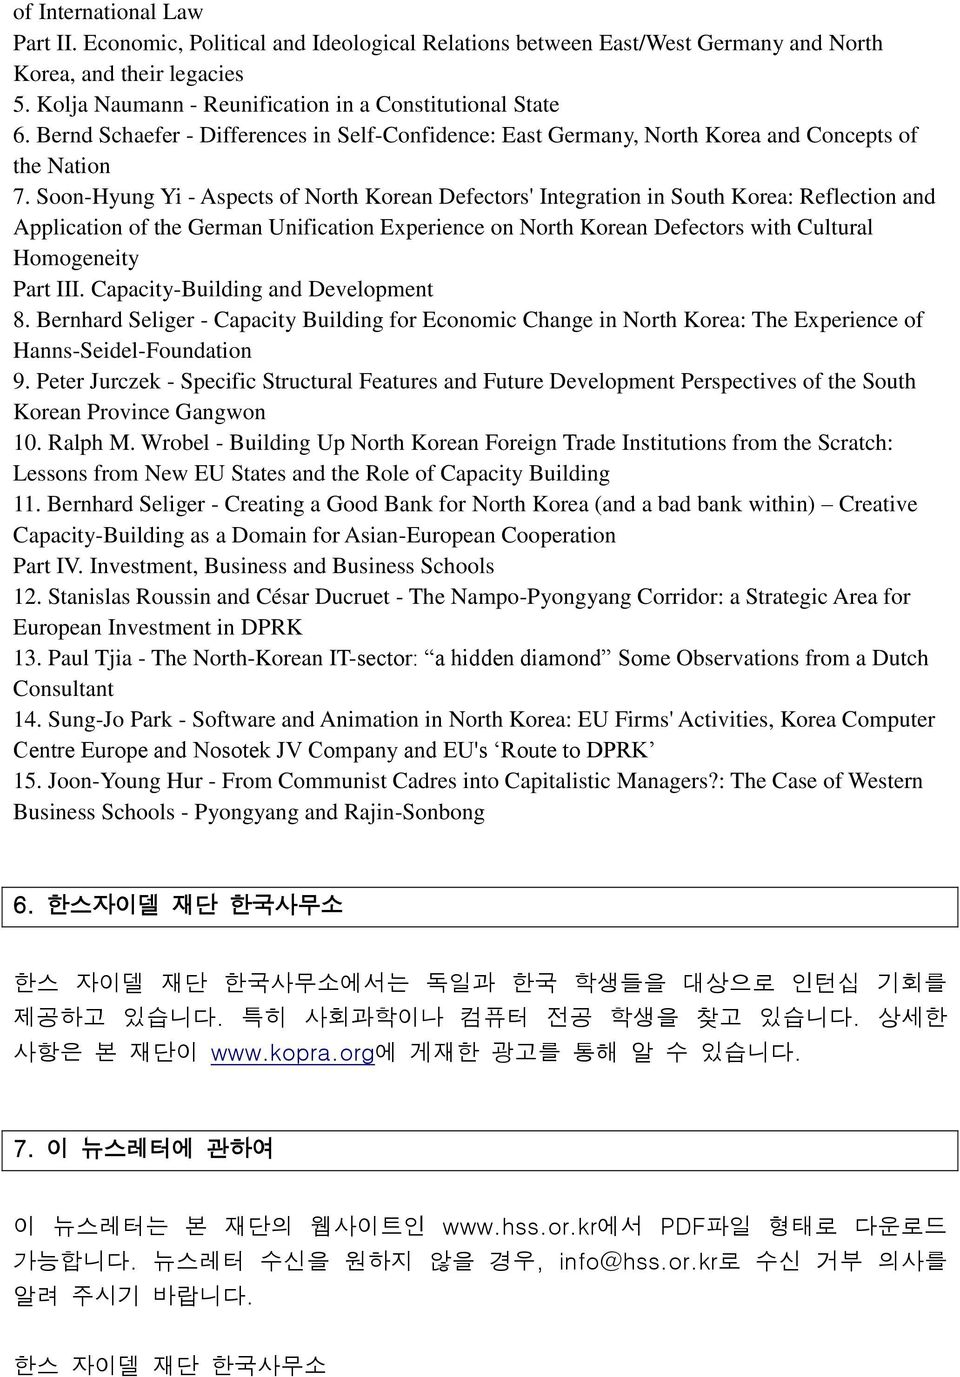 Soon-Hyung Yi - Aspects of North Korean Defectors' Integration in South Korea: Reflection and Application of the German Unification Experience on North Korean Defectors with Cultural Homogeneity Part